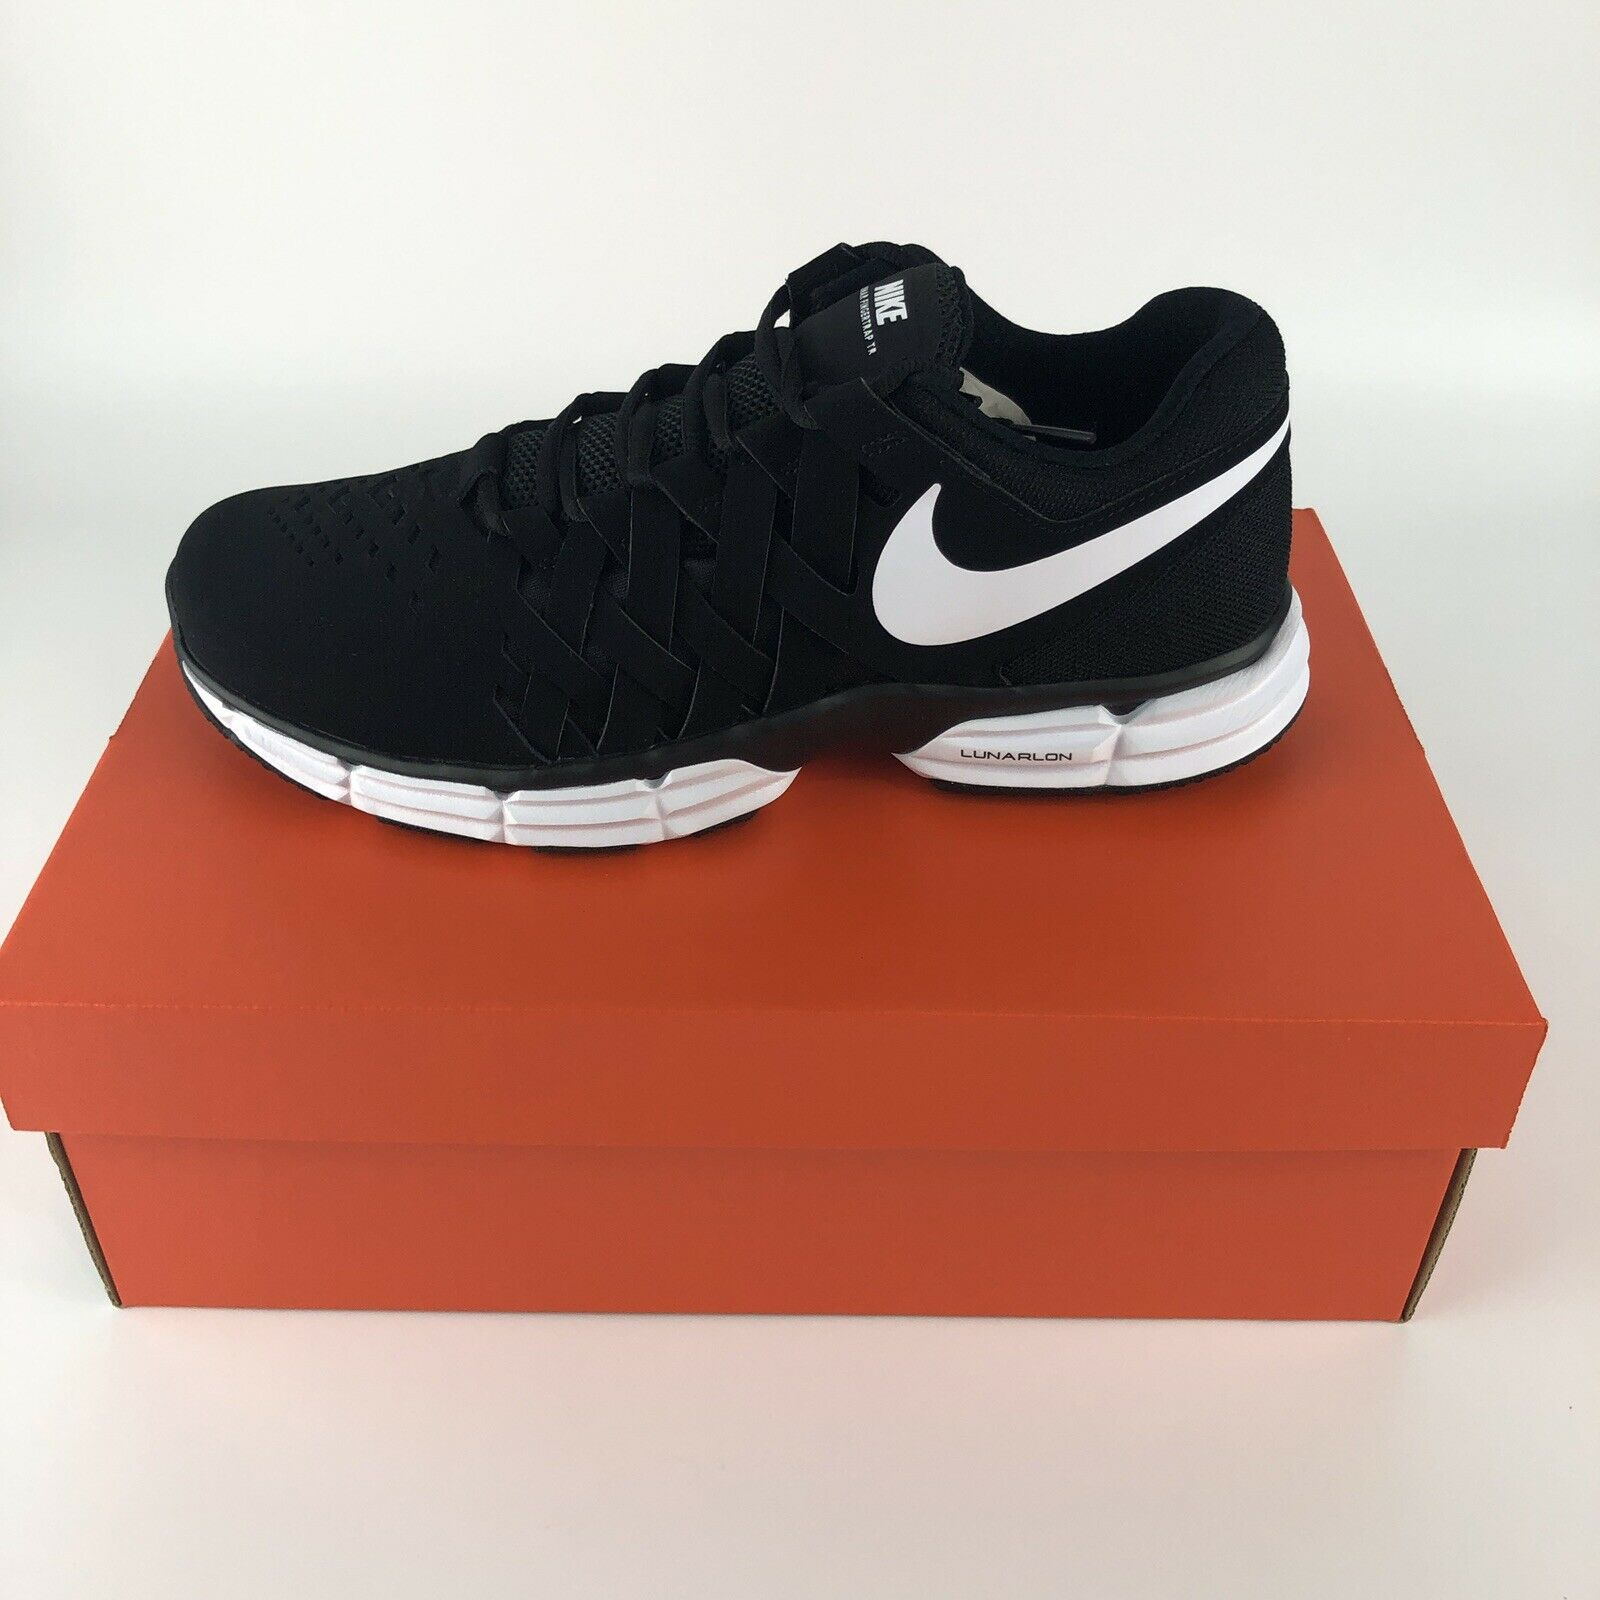 NEW Nike Lunar Mens Size 8.5 Fingertrap TR Trainer shoes Black White 4E Wide